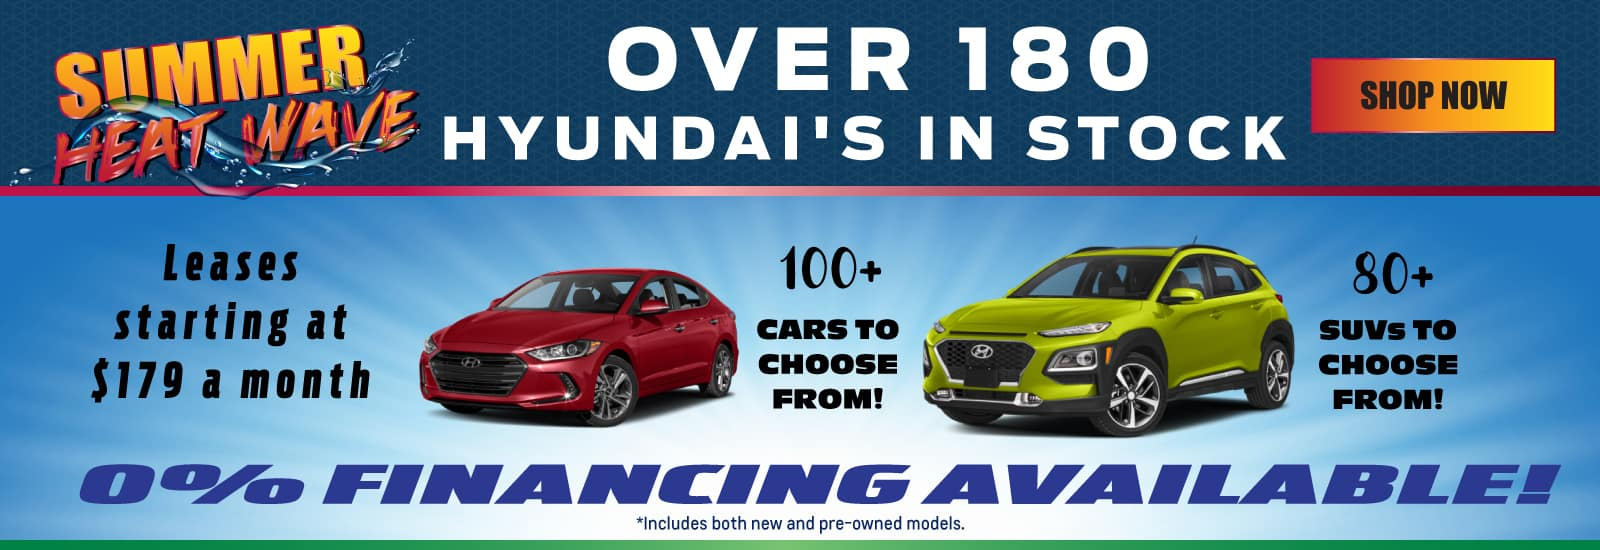 Over-180-Hyundais-To-Choose-From-Web-Banner-1600×550 (002) July…